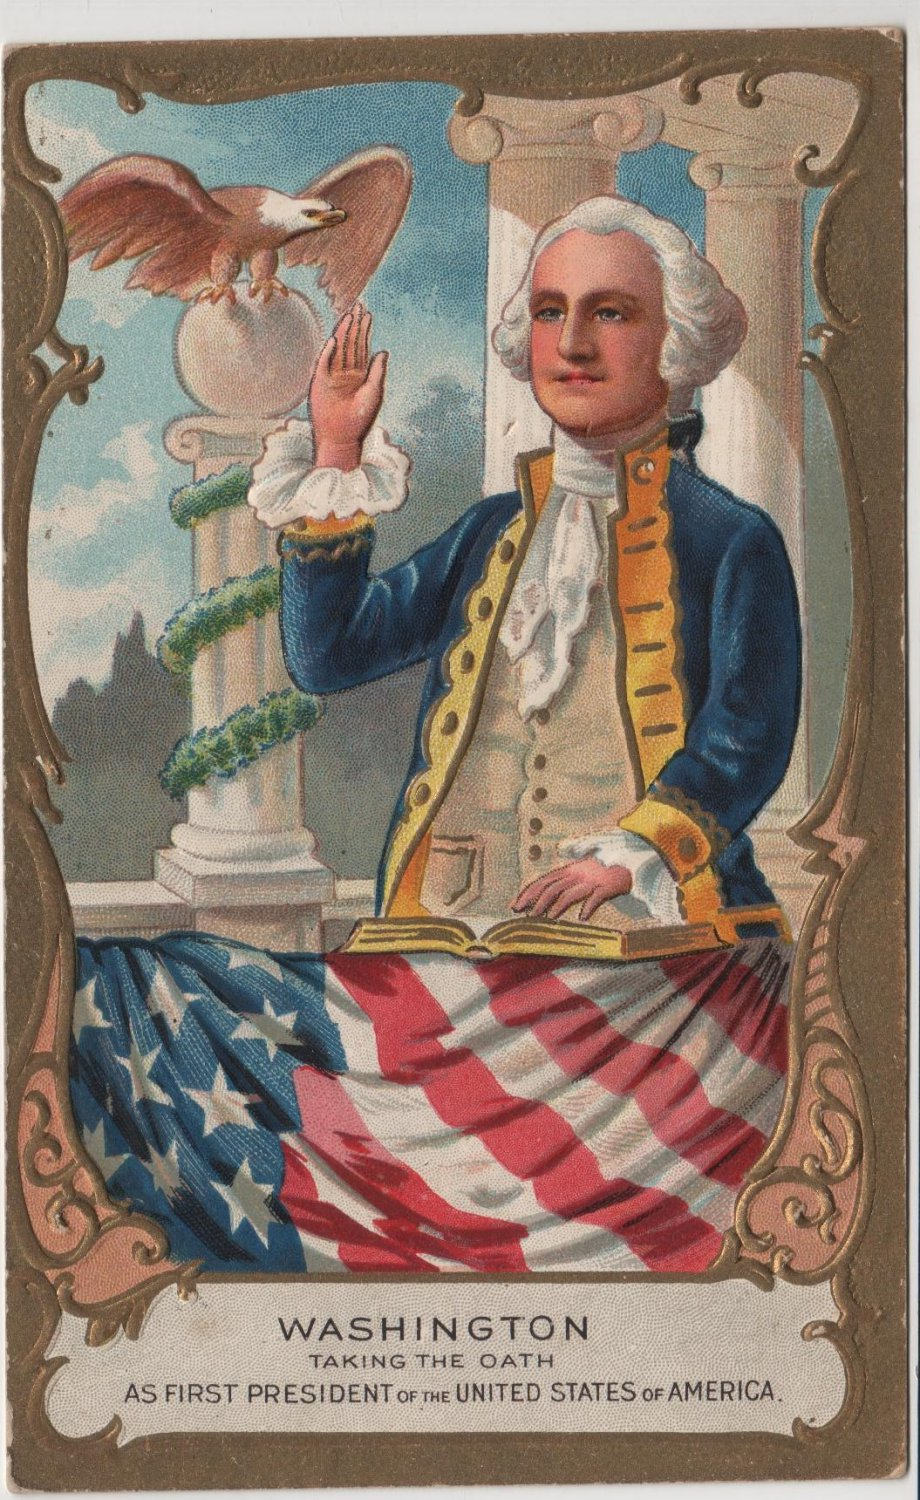 George Washington Bday Postcard, Taking The Oath c.1909